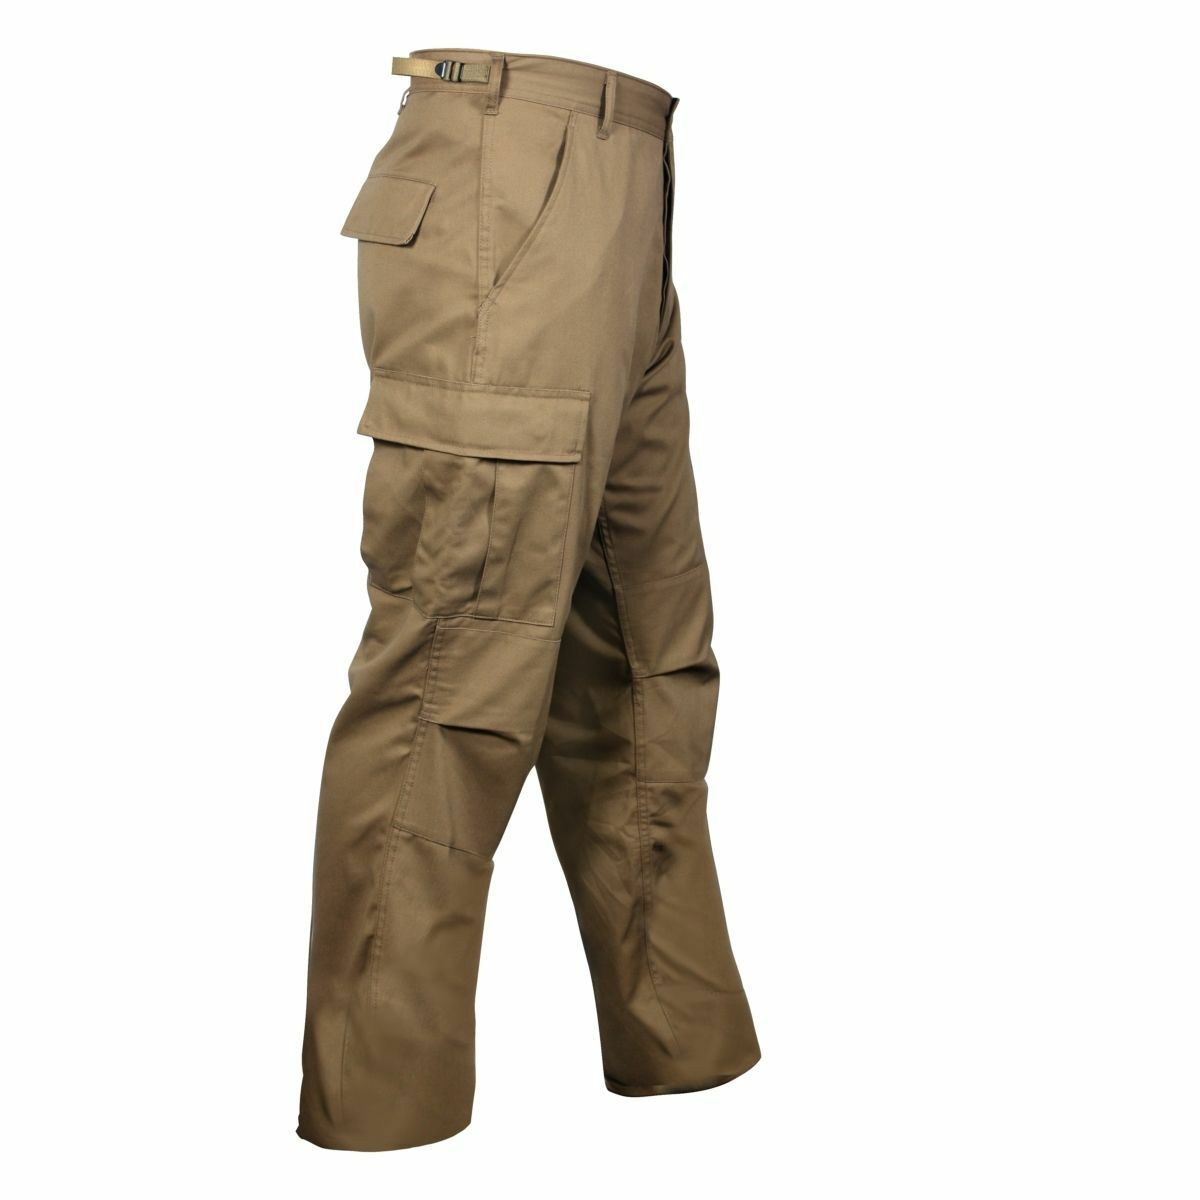 Coyote Brown Military BDU Cargo Polyester Cotton Fatigue Pants redhco 8522